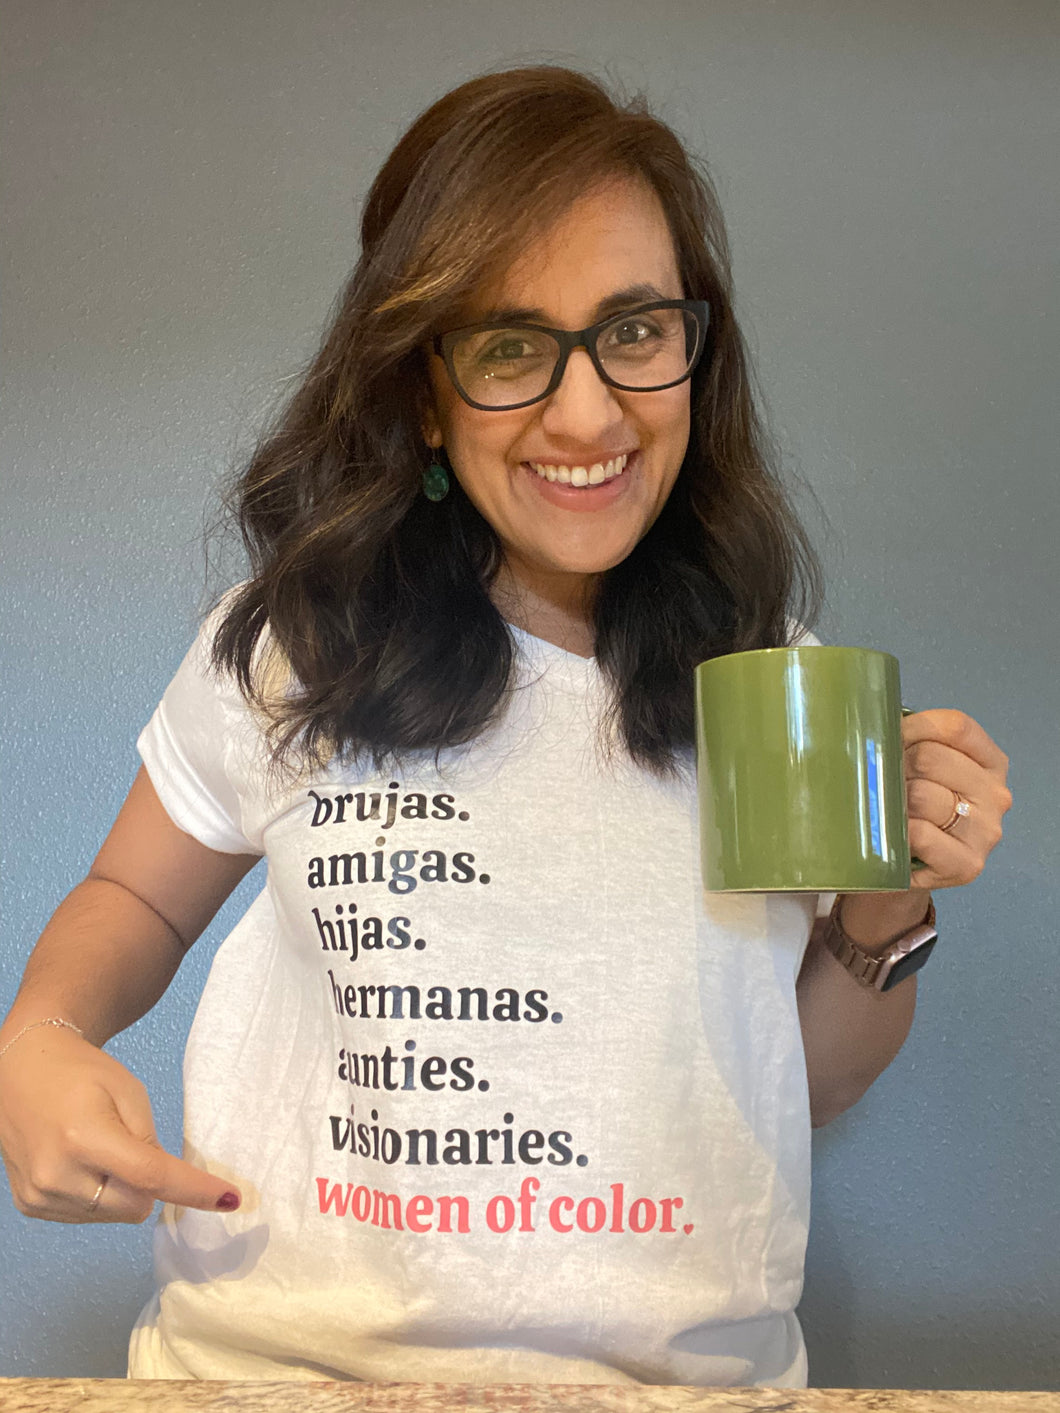 Woman of color with brown hair and glasses, holding a green mug wearing a white t-shirt with black lettering, reading brujas. amigas. hijas. hermanas. aunties. visionaries. and with coral pink lettering reading women of color.